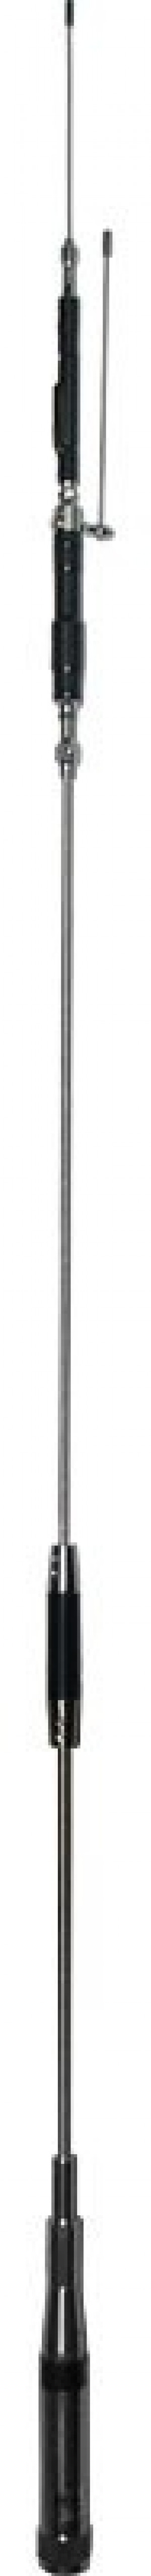 Diamond Antenna HV7A Quad Band Mobile Antenna (10m/6m/2m/70cm)